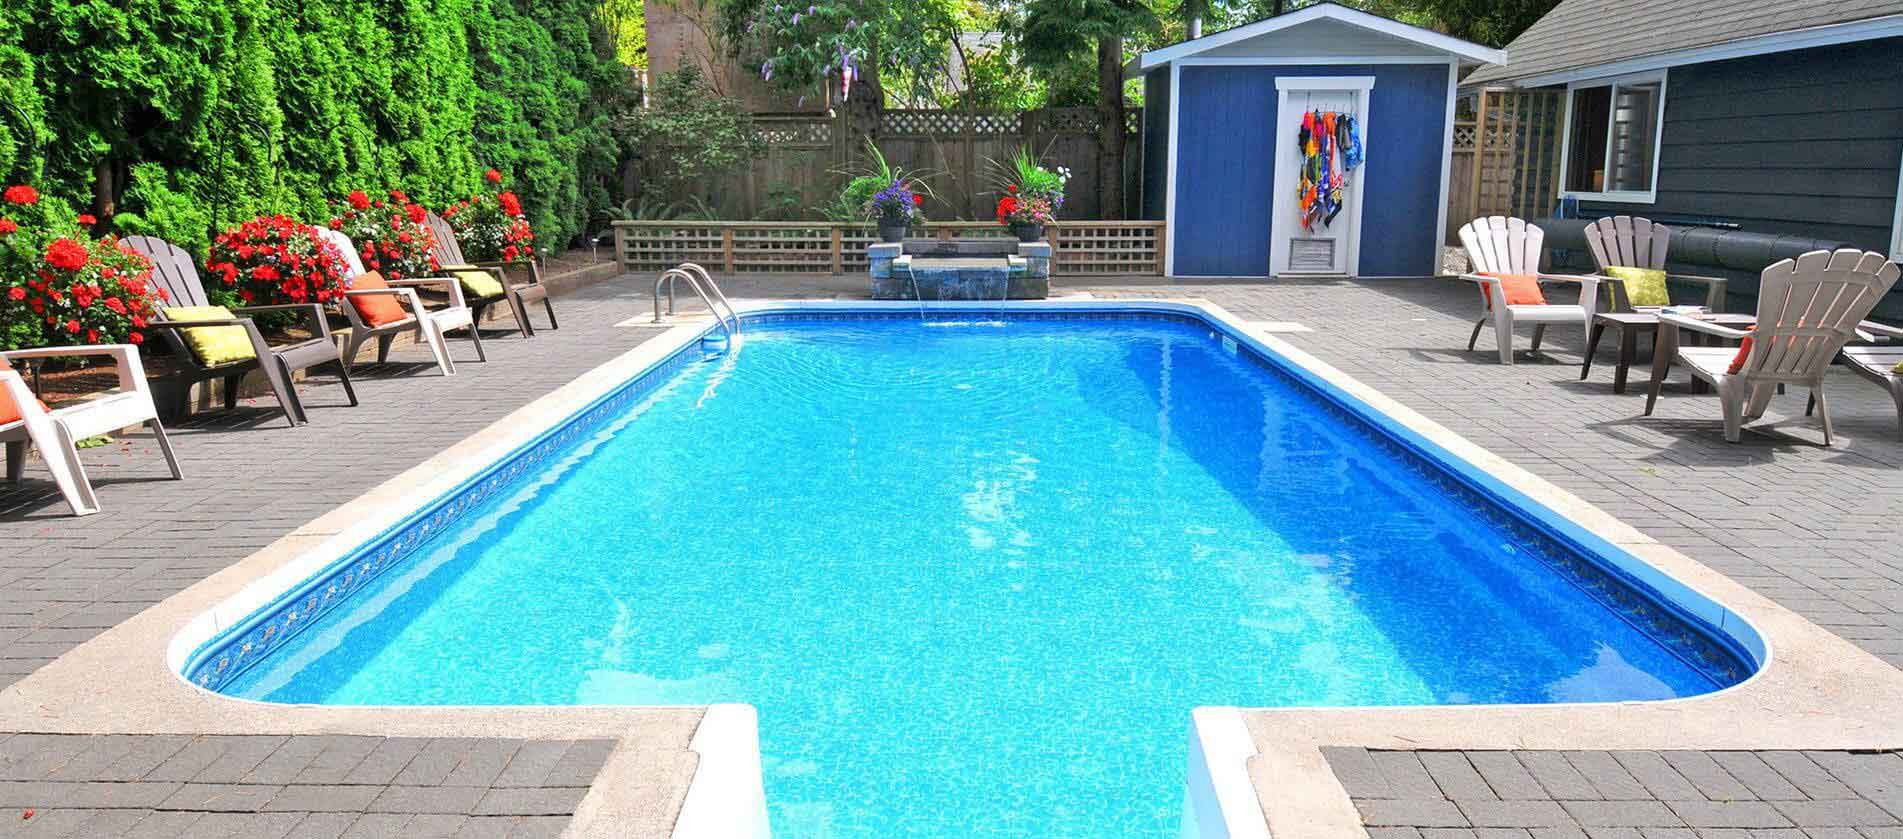 Swimming Pool Ideas For Backyard